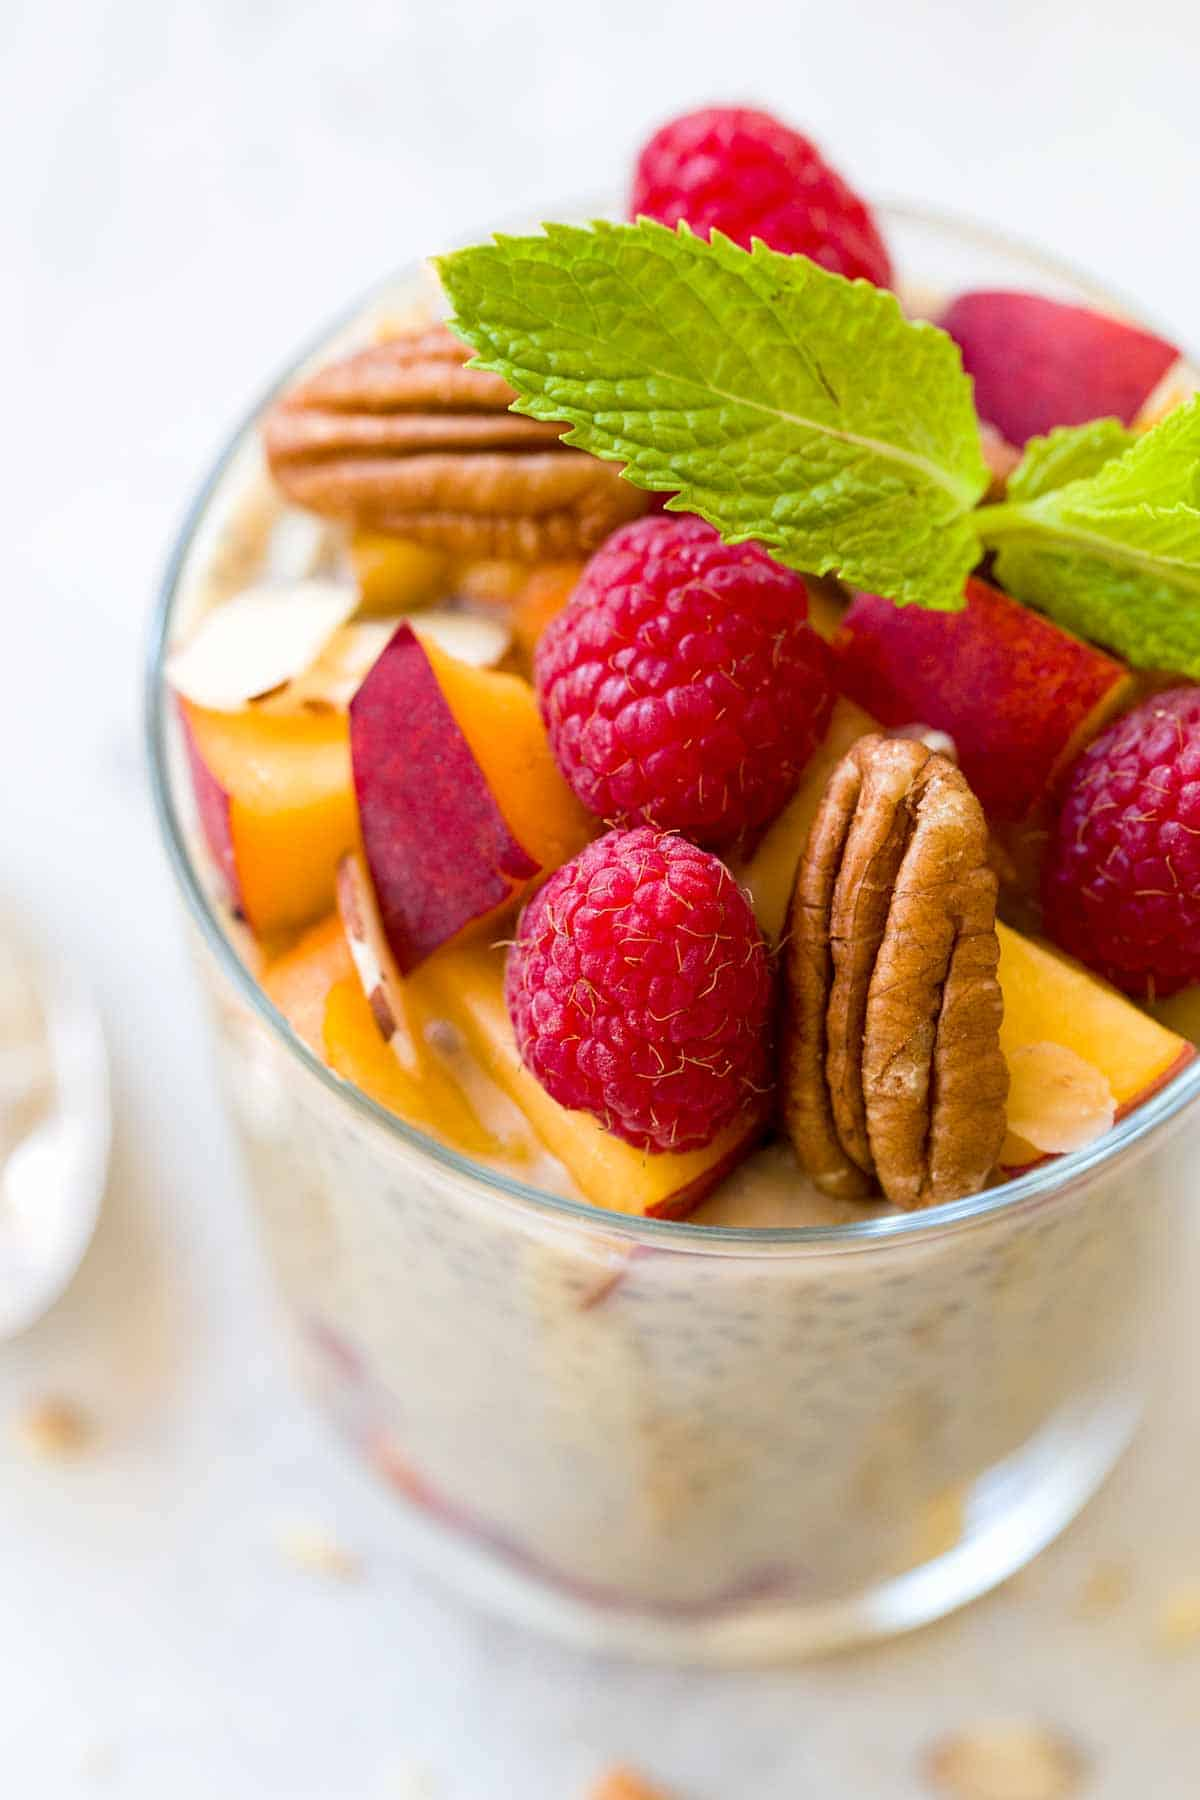 Glass cup of chia seed pudding with raspberries, chopped peaches, and walnuts on top